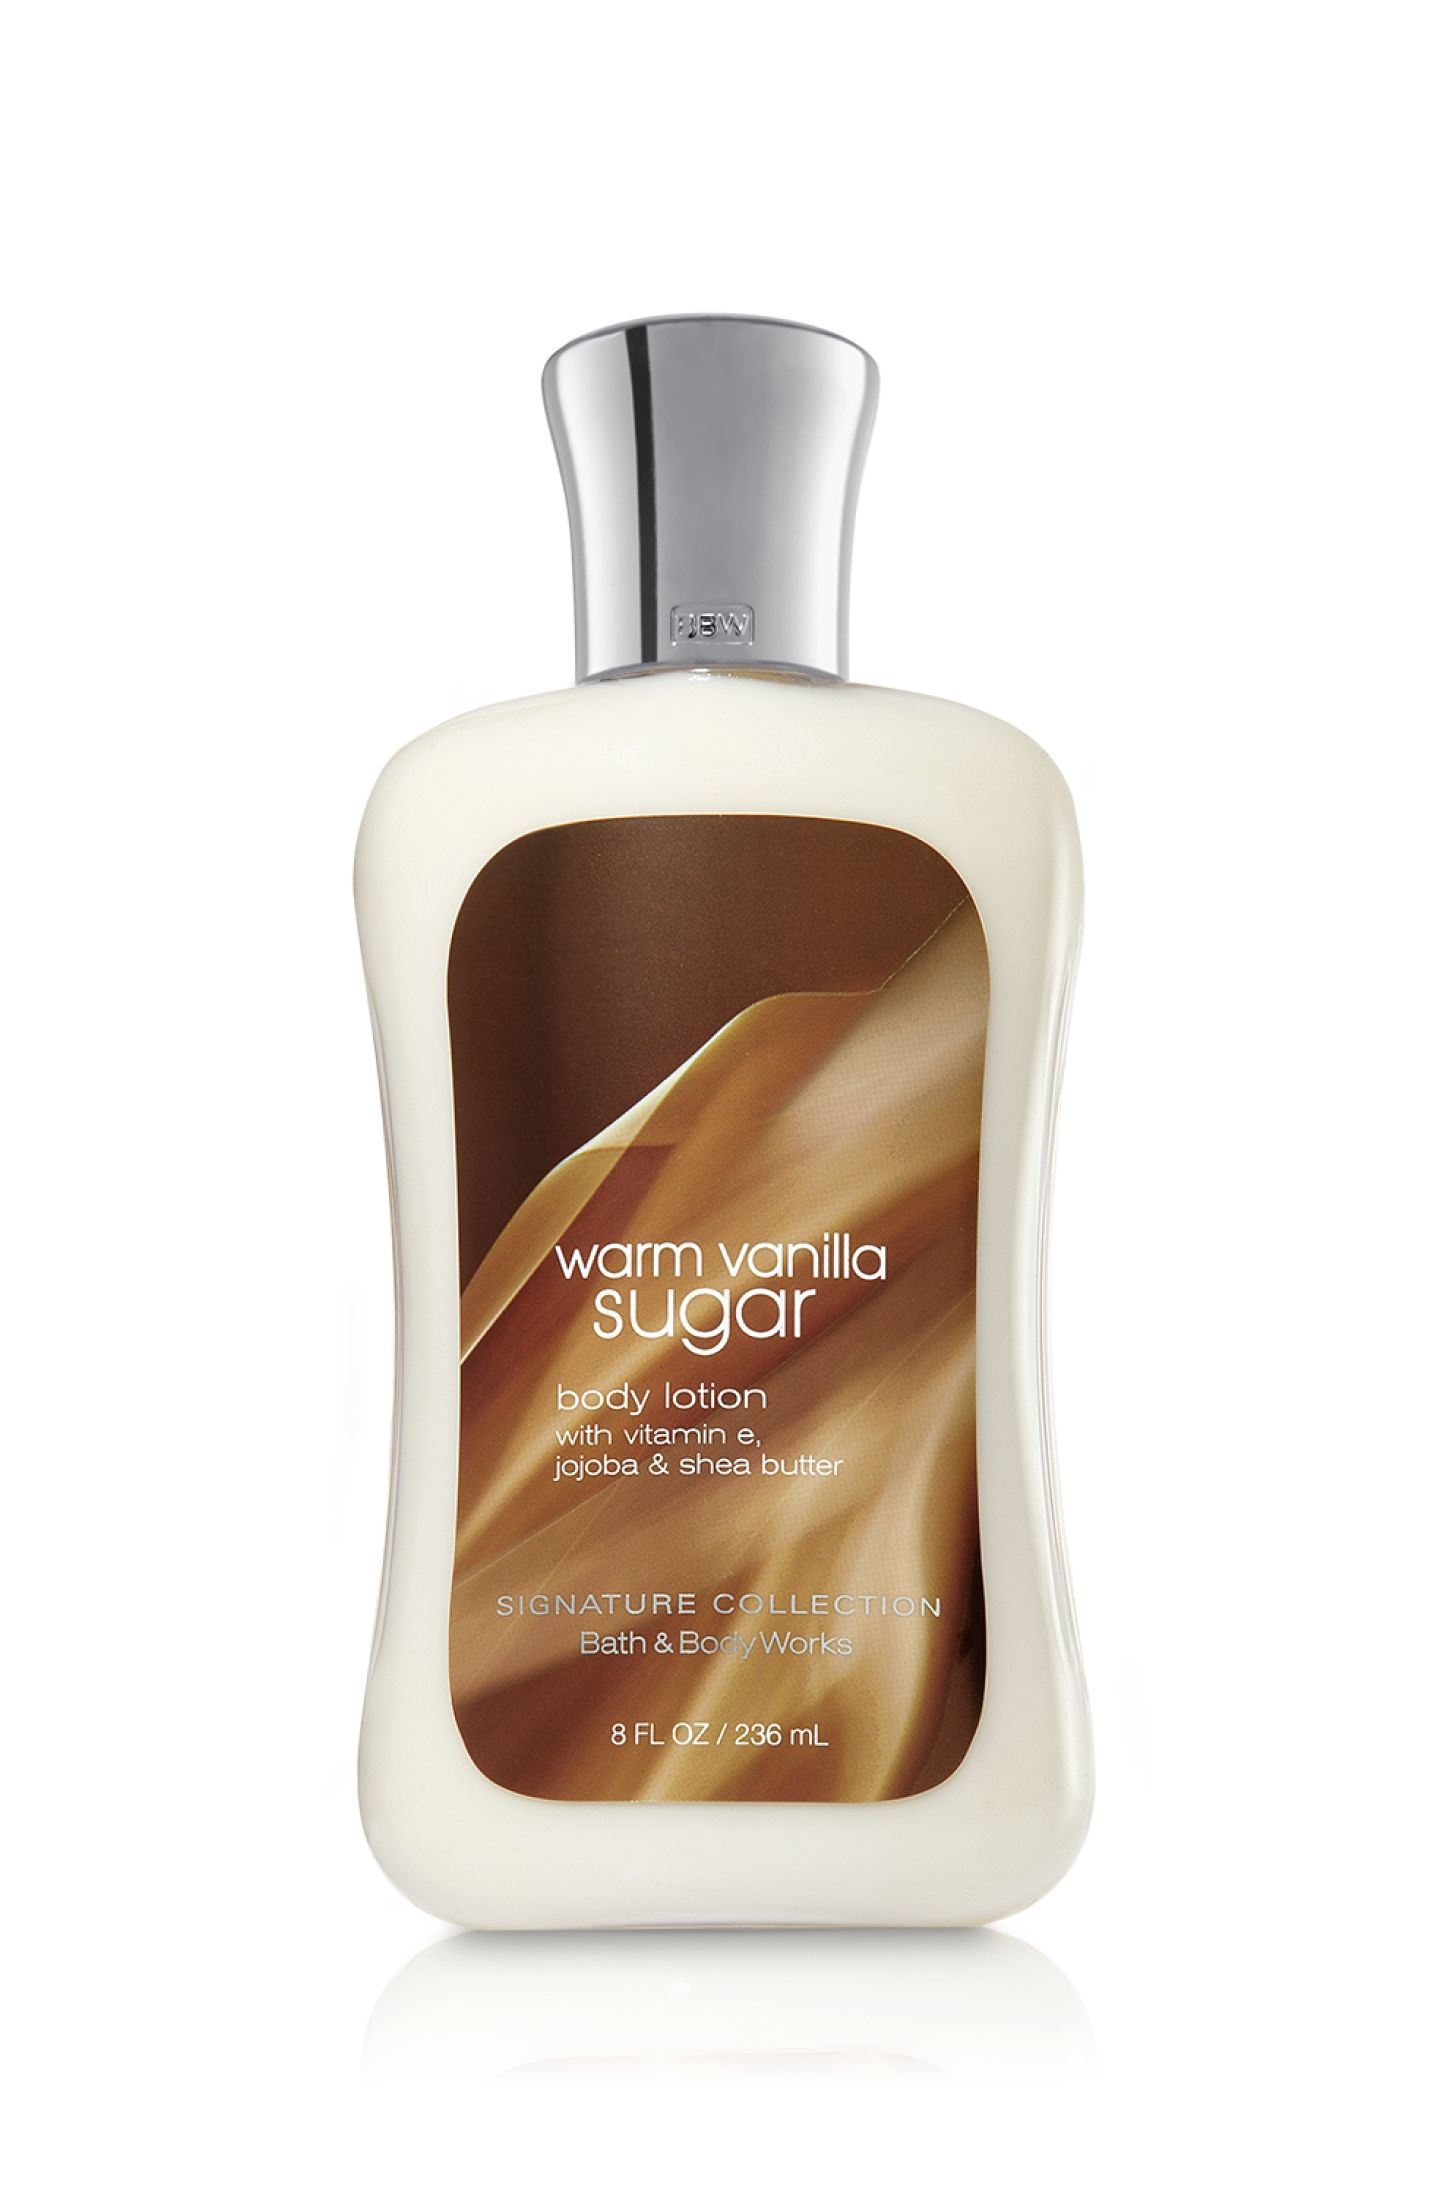 Bath And Bodyworks Warm Vanilla Sugar Body Lotion Sugar Body